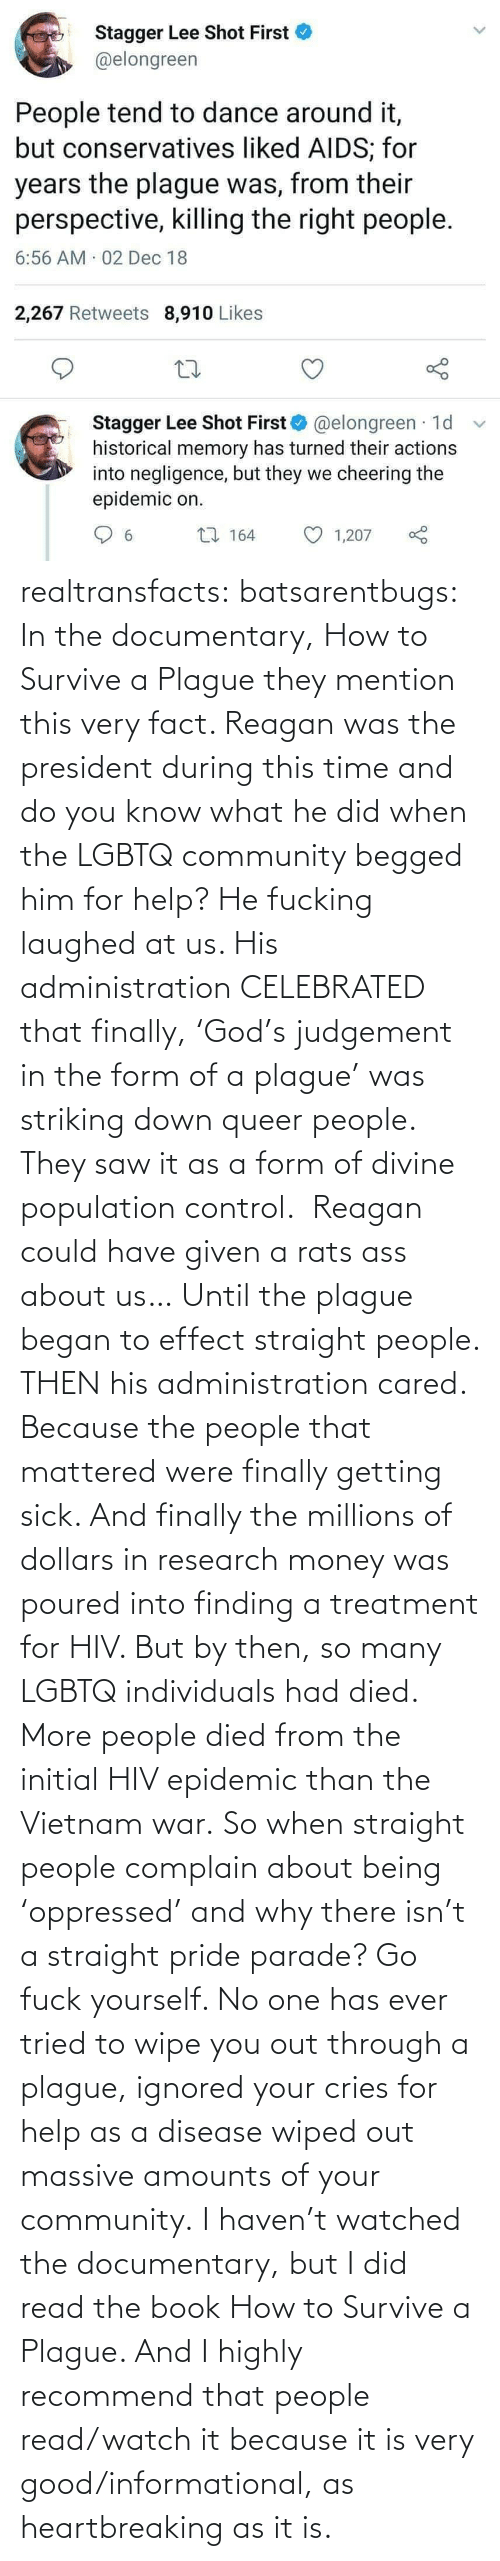 Saw: Stagger Lee Shot First  @elongreen  People tend to dance around it,  but conservatives liked AIDS; for  years the plague was, from their  perspective, killing the right people.  6:56 AM 02 Dec 18  2,267 Retweets 8,910 Likes  Stagger Lee Shot First O @elongreen · 1d  historical memory has turned their actions  into negligence, but they we cheering the  epidemic on.  27 164  1,207  6. realtransfacts:  batsarentbugs:  In the documentary, How to Survive a Plague they mention this very fact. Reagan was the president during this time and do you know what he did when the LGBTQ community begged him for help? He fucking laughed at us. His administration CELEBRATED that finally, 'God's judgement in the form of a plague' was striking down queer people.  They saw it as a form of divine population control.  Reagan could have given a rats ass about us… Until the plague began to effect straight people. THEN his administration cared. Because the people that mattered were finally getting sick. And finally the millions of dollars in research money was poured into finding a treatment for HIV. But by then, so many LGBTQ individuals had died.  More people died from the initial HIV epidemic than the Vietnam war. So when straight people complain about being 'oppressed' and why there isn't a straight pride parade? Go fuck yourself. No one has ever tried to wipe you out through a plague, ignored your cries for help as a disease wiped out massive amounts of your community.  I haven't watched the documentary, but I did read the book  How to Survive a Plague. And I highly recommend that people read/watch it because it is very good/informational, as heartbreaking as it is.